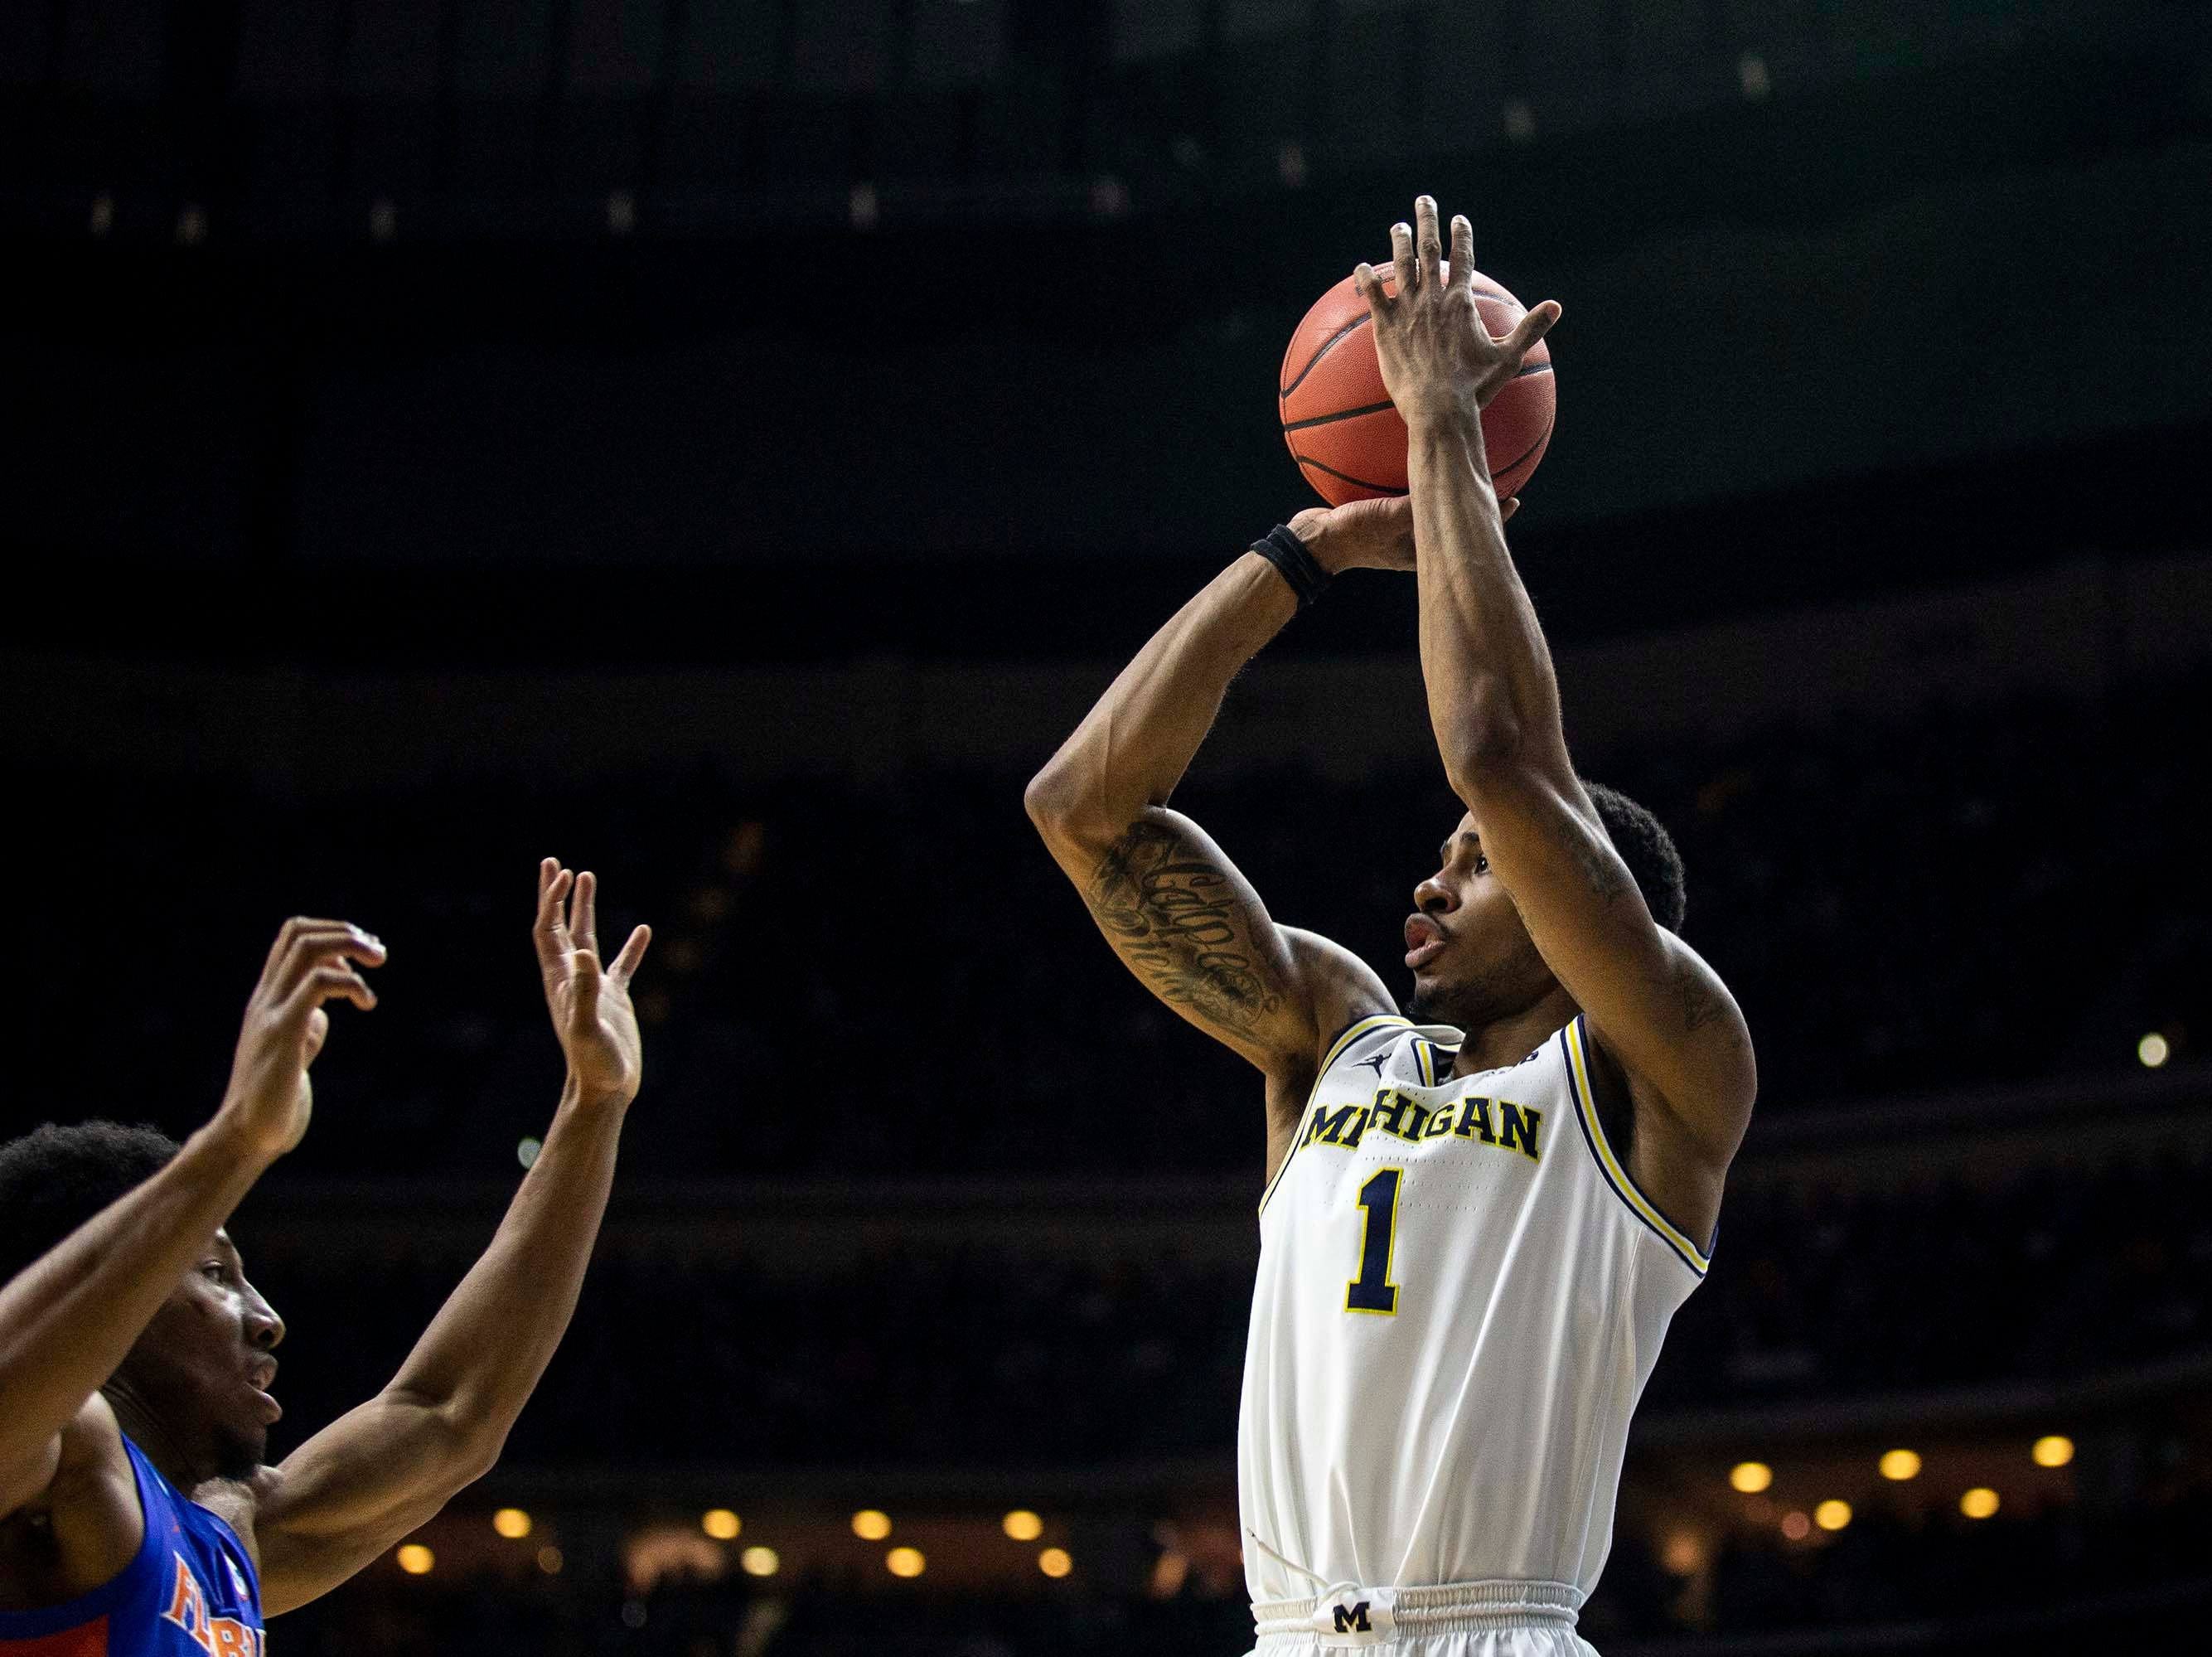 Michigan's Charles Matthews shoots the ball during the NCAA Tournament second-round match-up between Michigan and Florida on Saturday, March 23, 2019, in Wells Fargo Arena in Des Moines, Iowa.